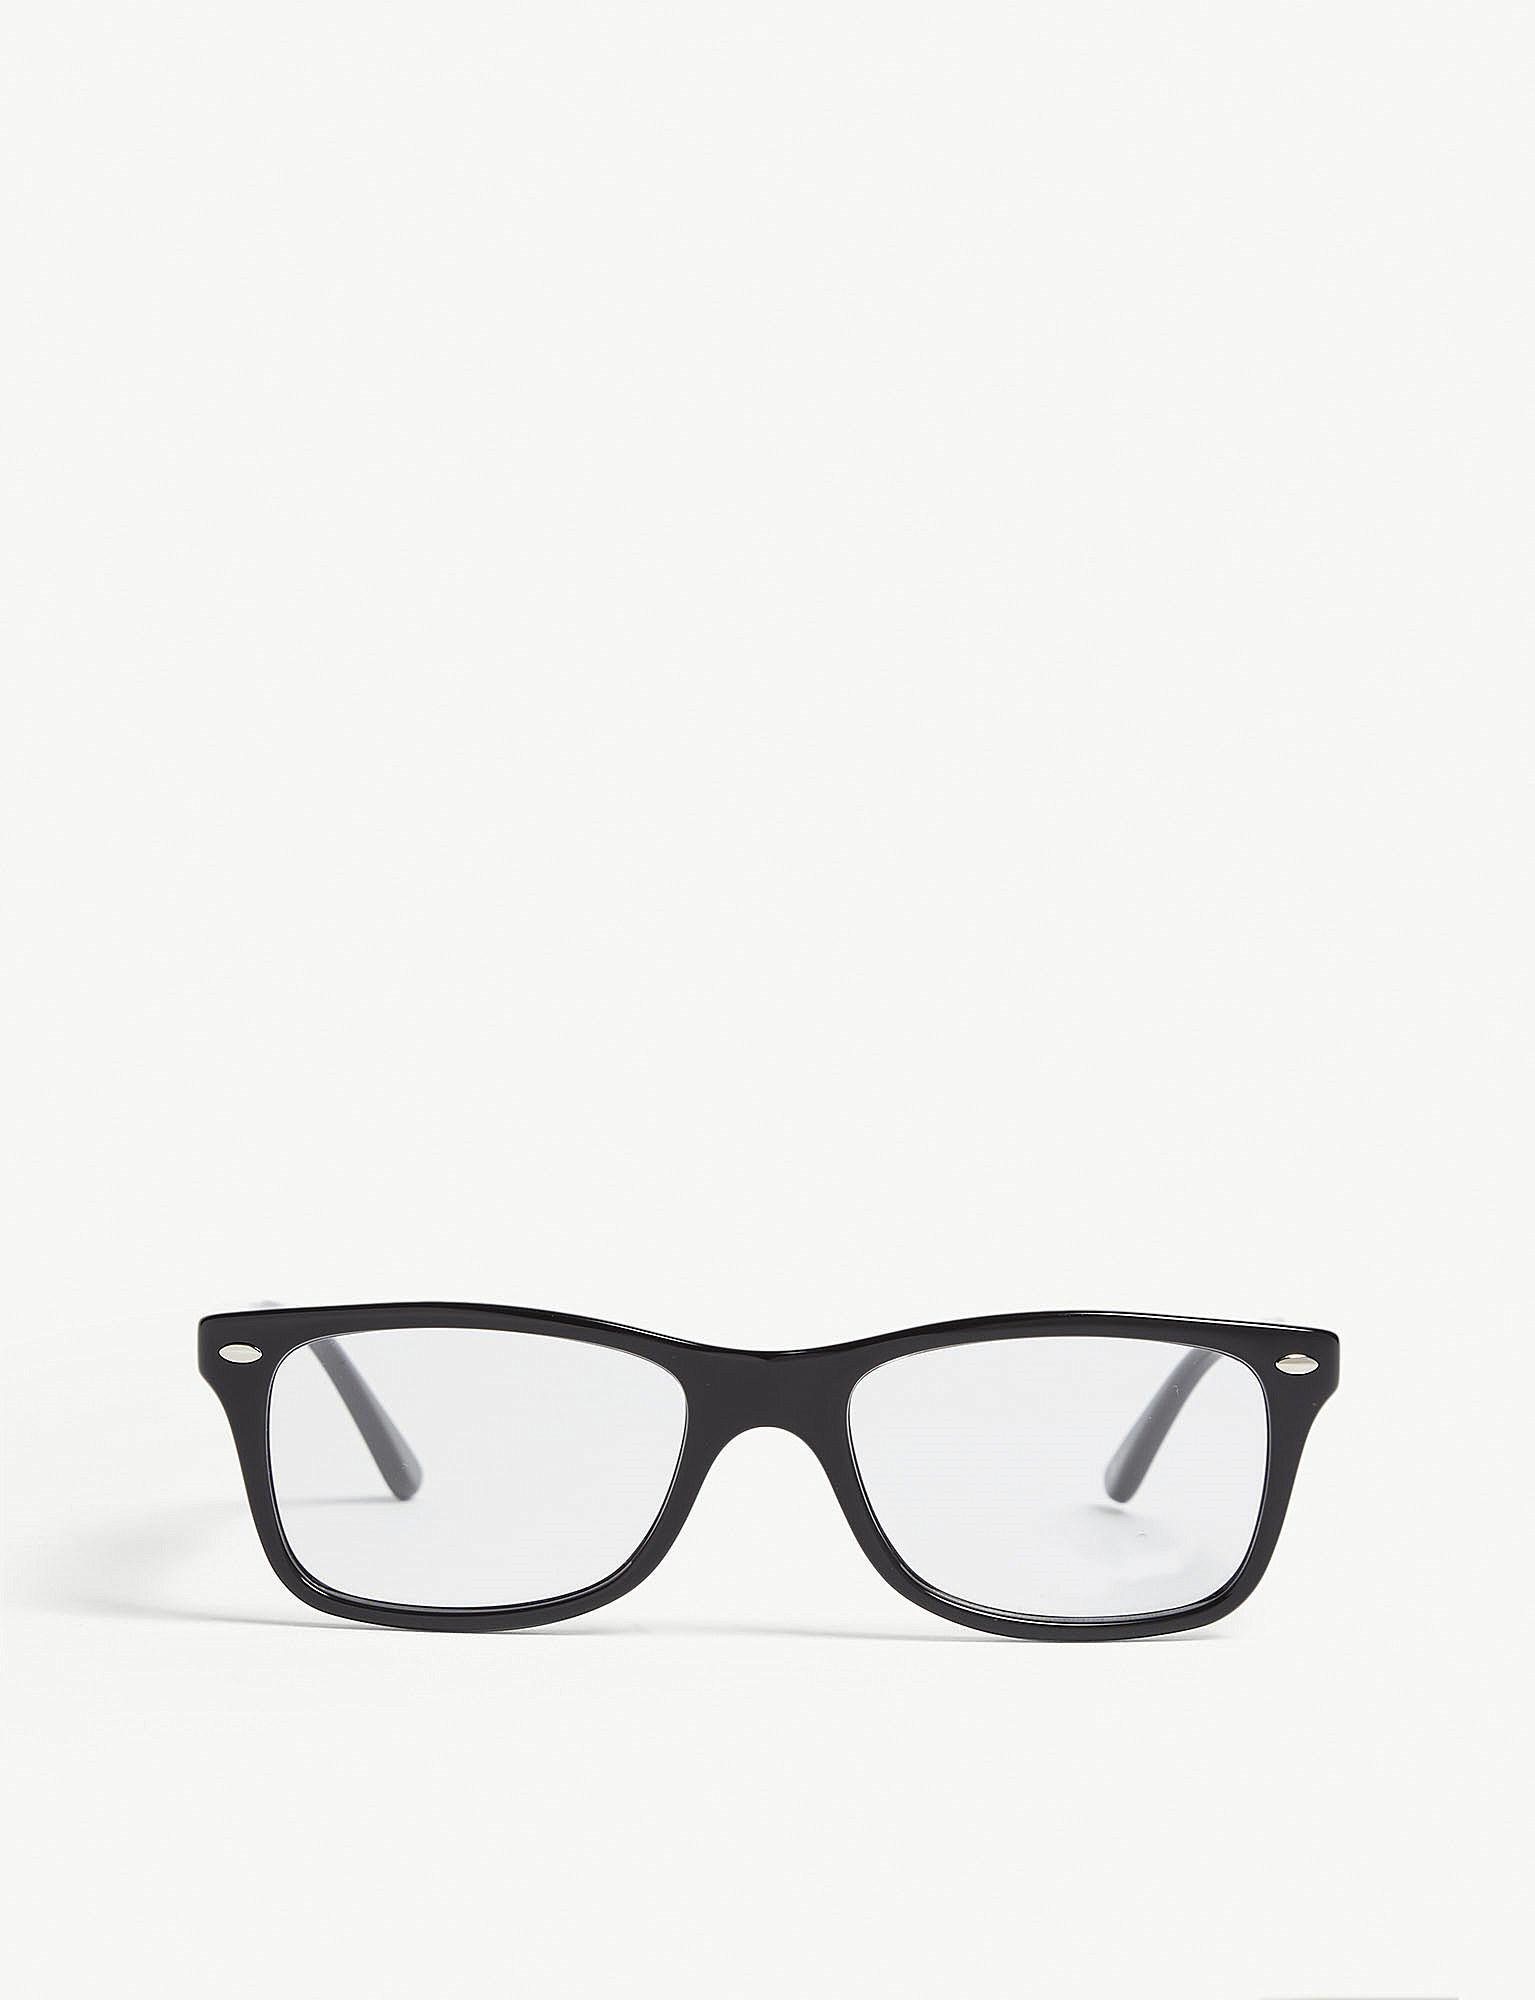 lyst ray ban rb5228 square frame glasses in black  ray ban women s black rb5228 square frame glasses